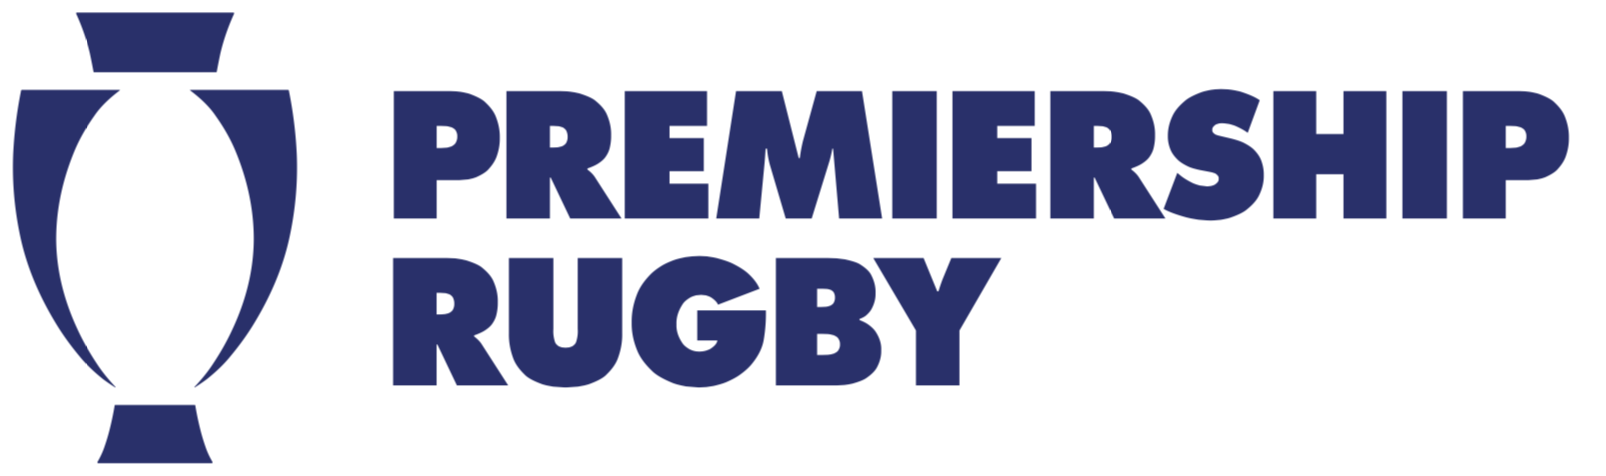 Premiership Ruby Logo